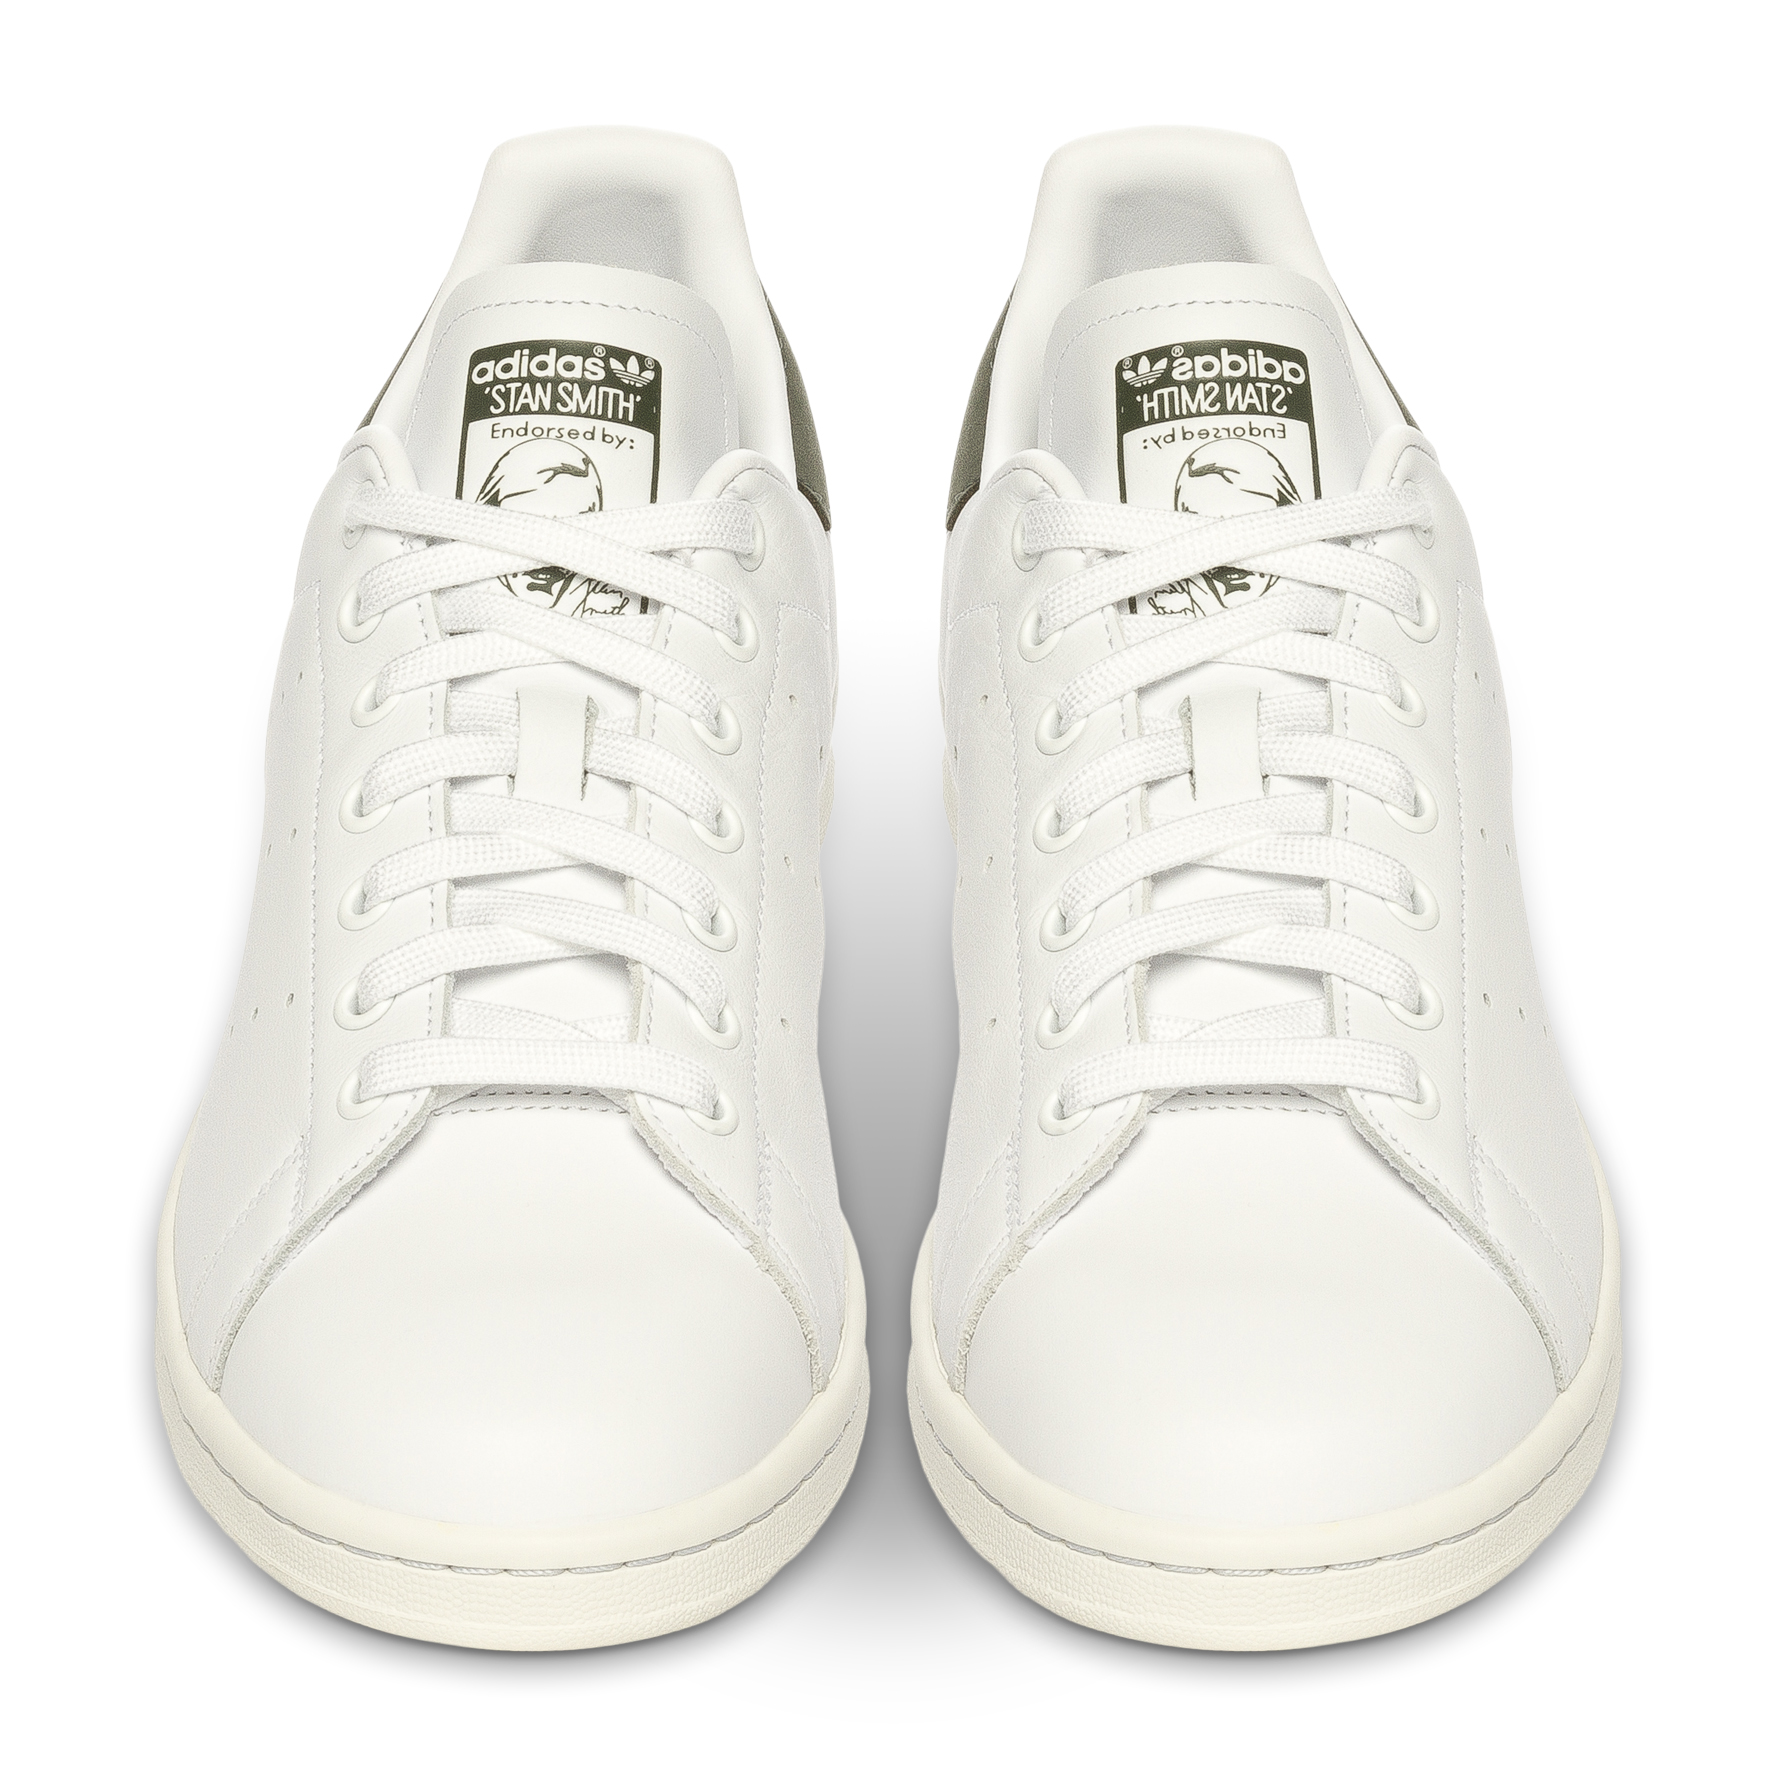 reputable site 03d1e ec774 ADIDAS Stan Smith - Hvit 322391 feetfirst.no